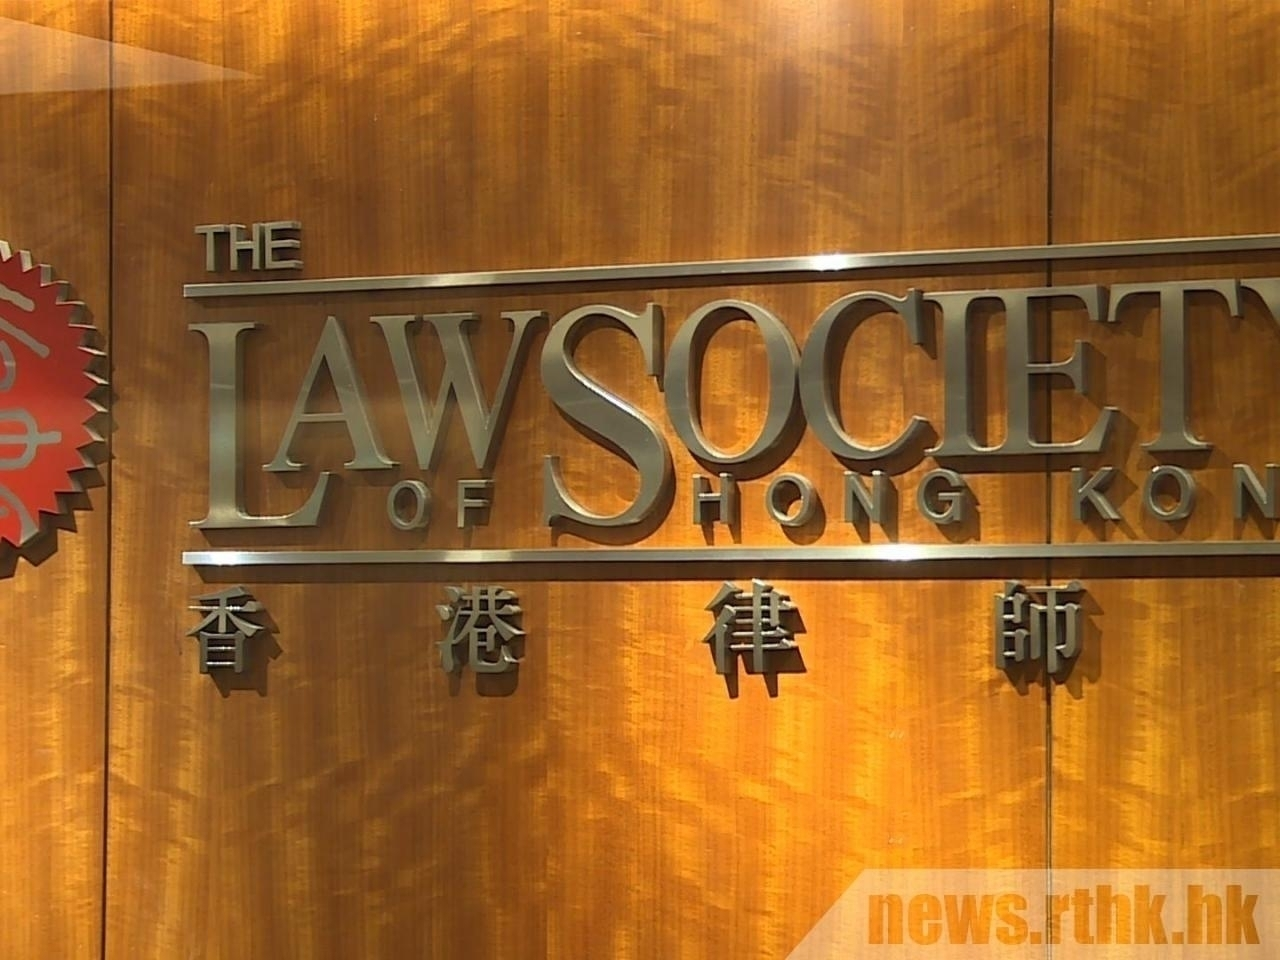 Law Society, terrified firm conflict over intervention